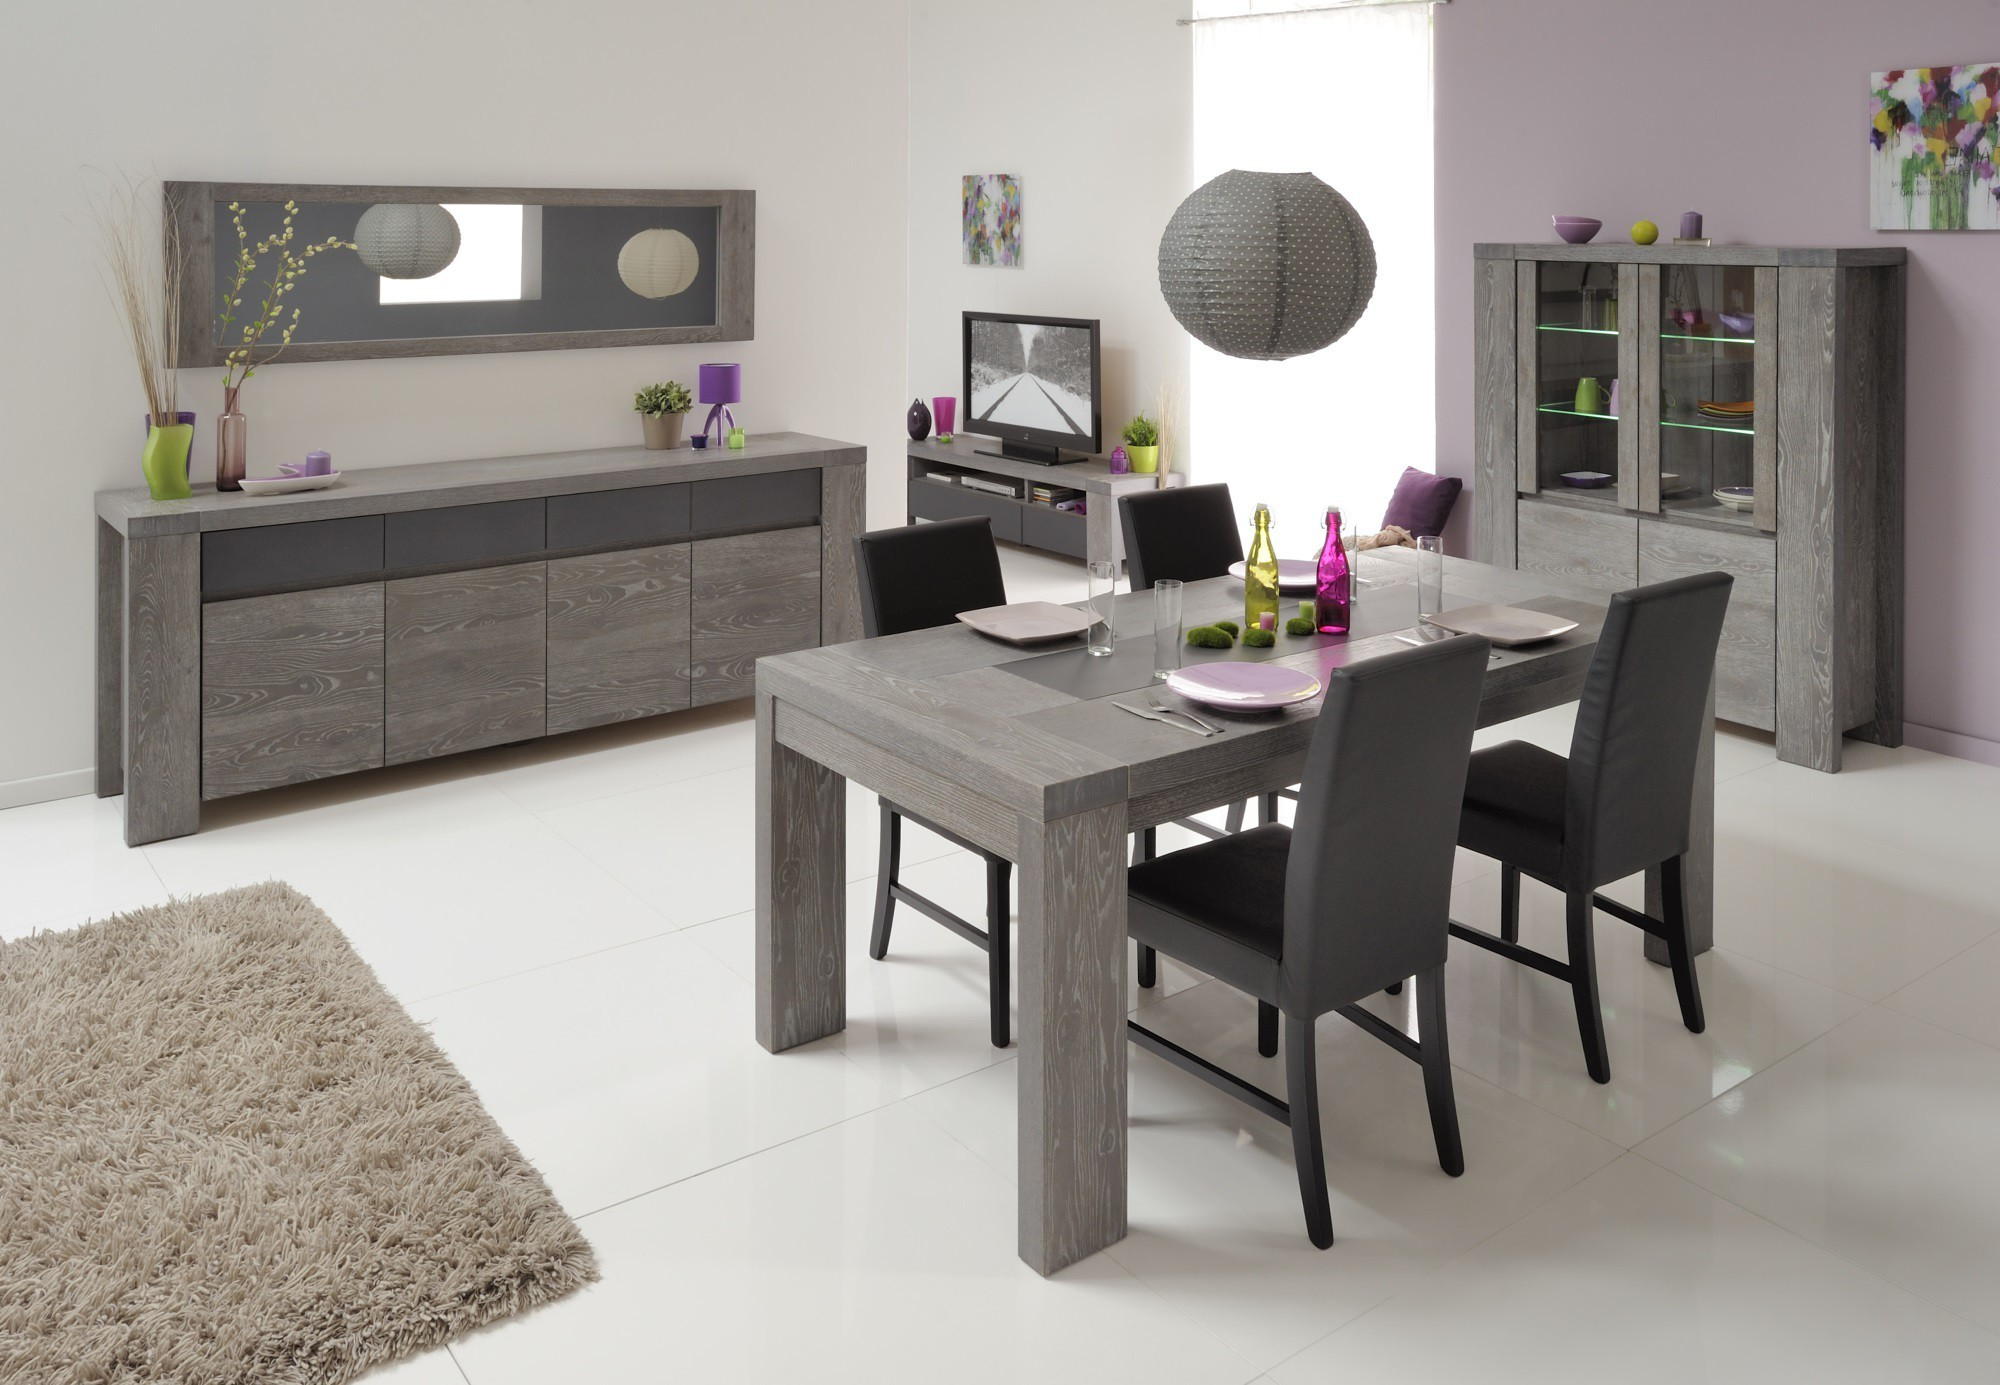 Table salle a manger design conforama cool ides de table for Table salle a manger carree conforama